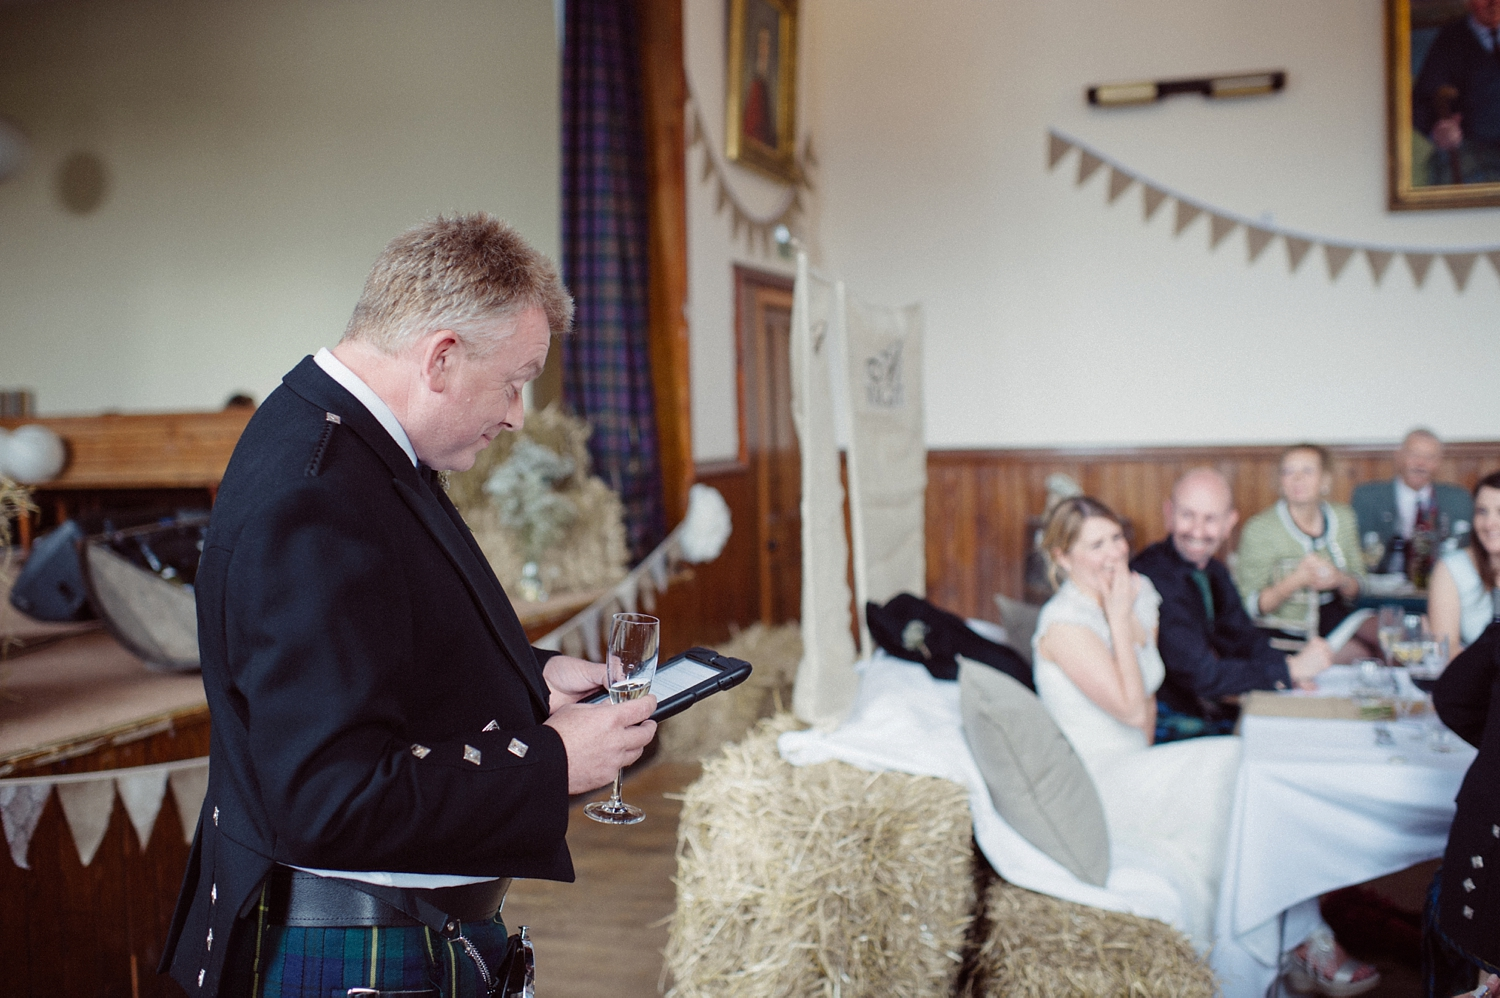 182-lisa-devine-photography-alternative-wedding-photography-skye-scotland.JPG